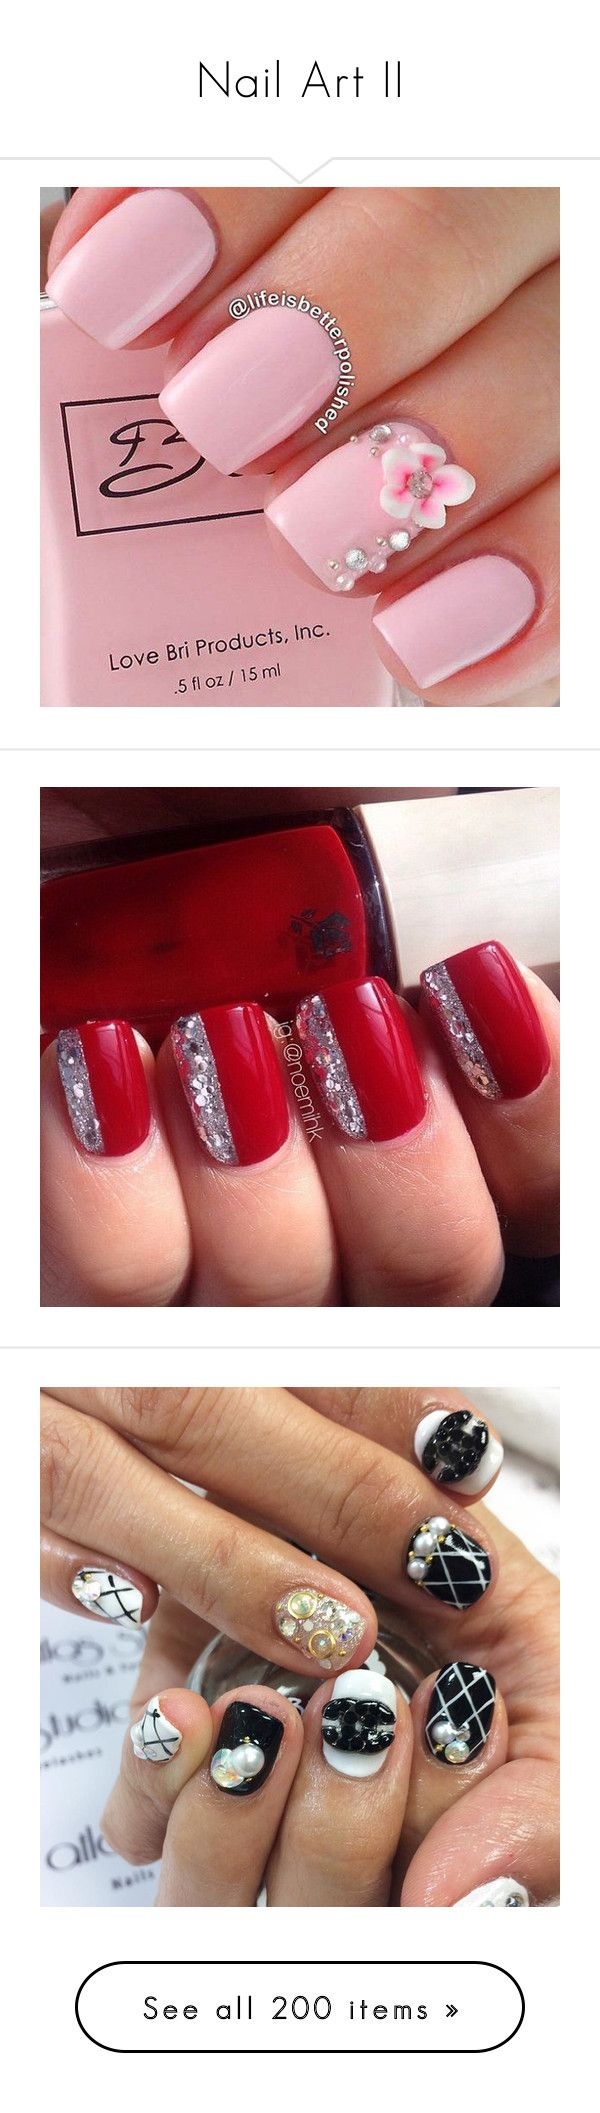 Nail art ii by gymholic liked on polyvore featuring beauty nail art ii by gymholic liked on polyvore featuring beauty products nail prinsesfo Images